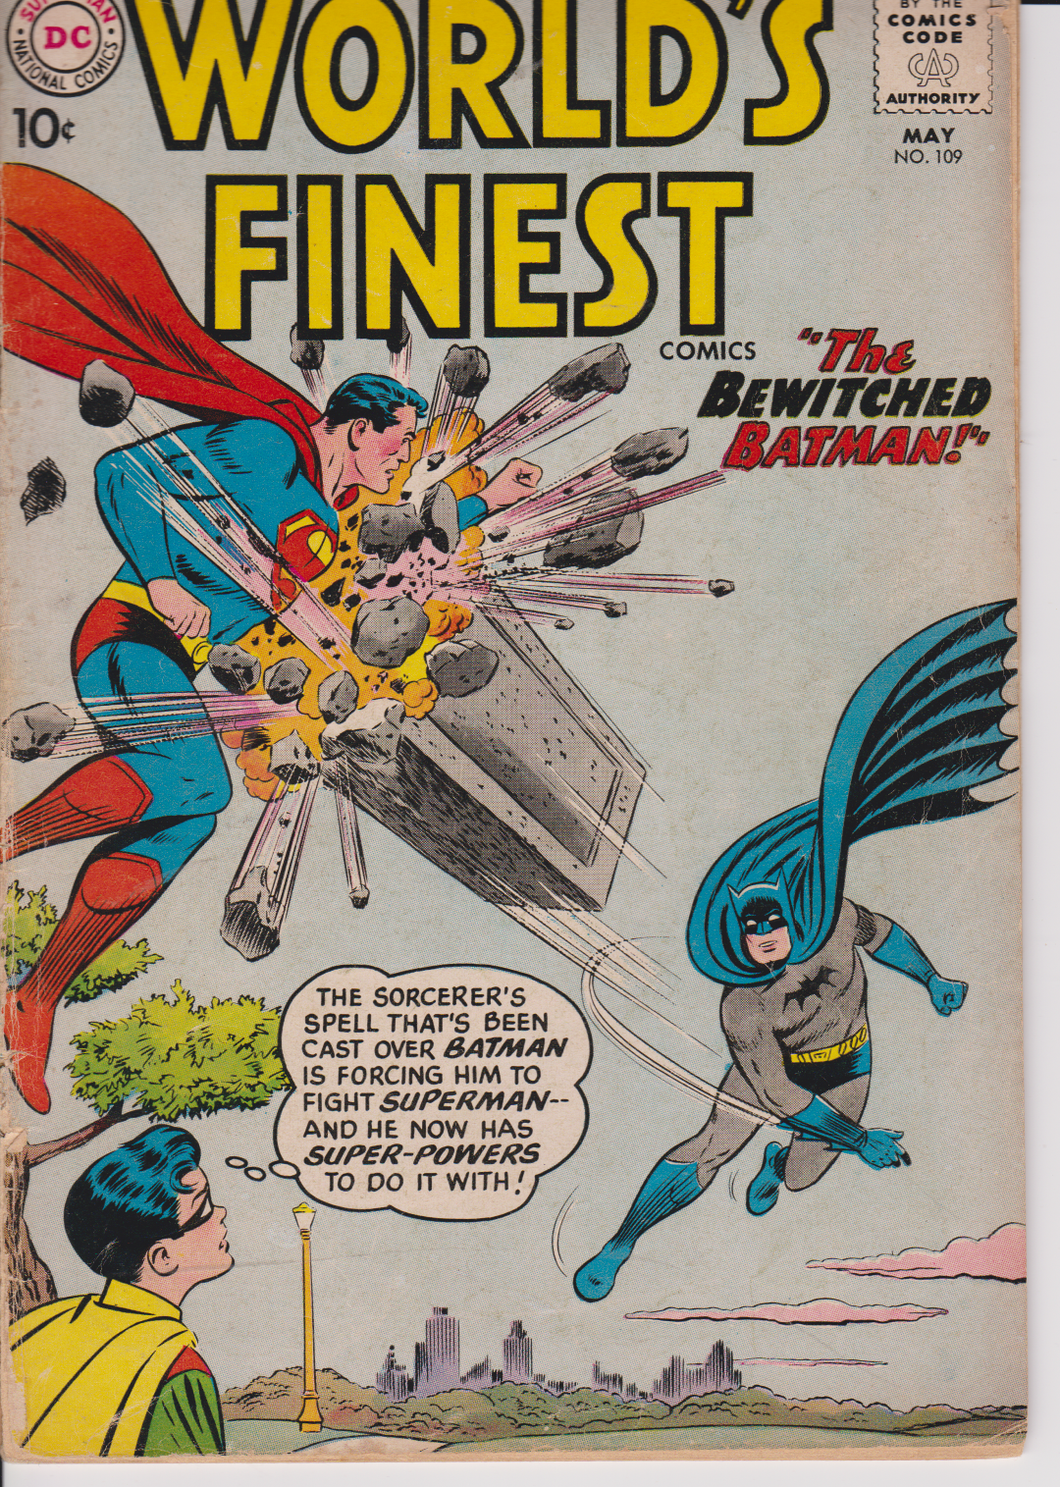 World's Finest #109